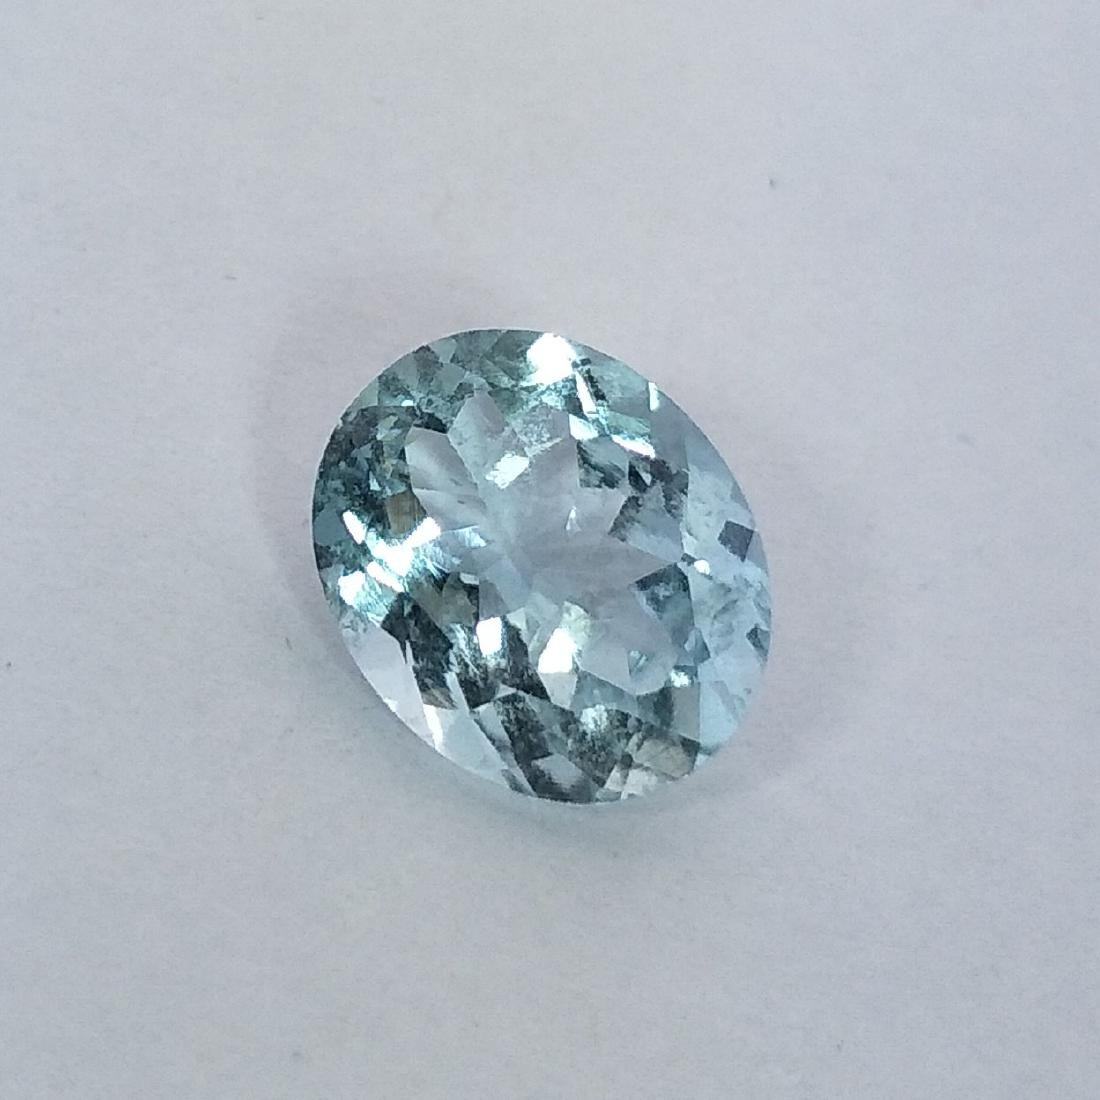 Aquamarine - 3.15 ct - 2